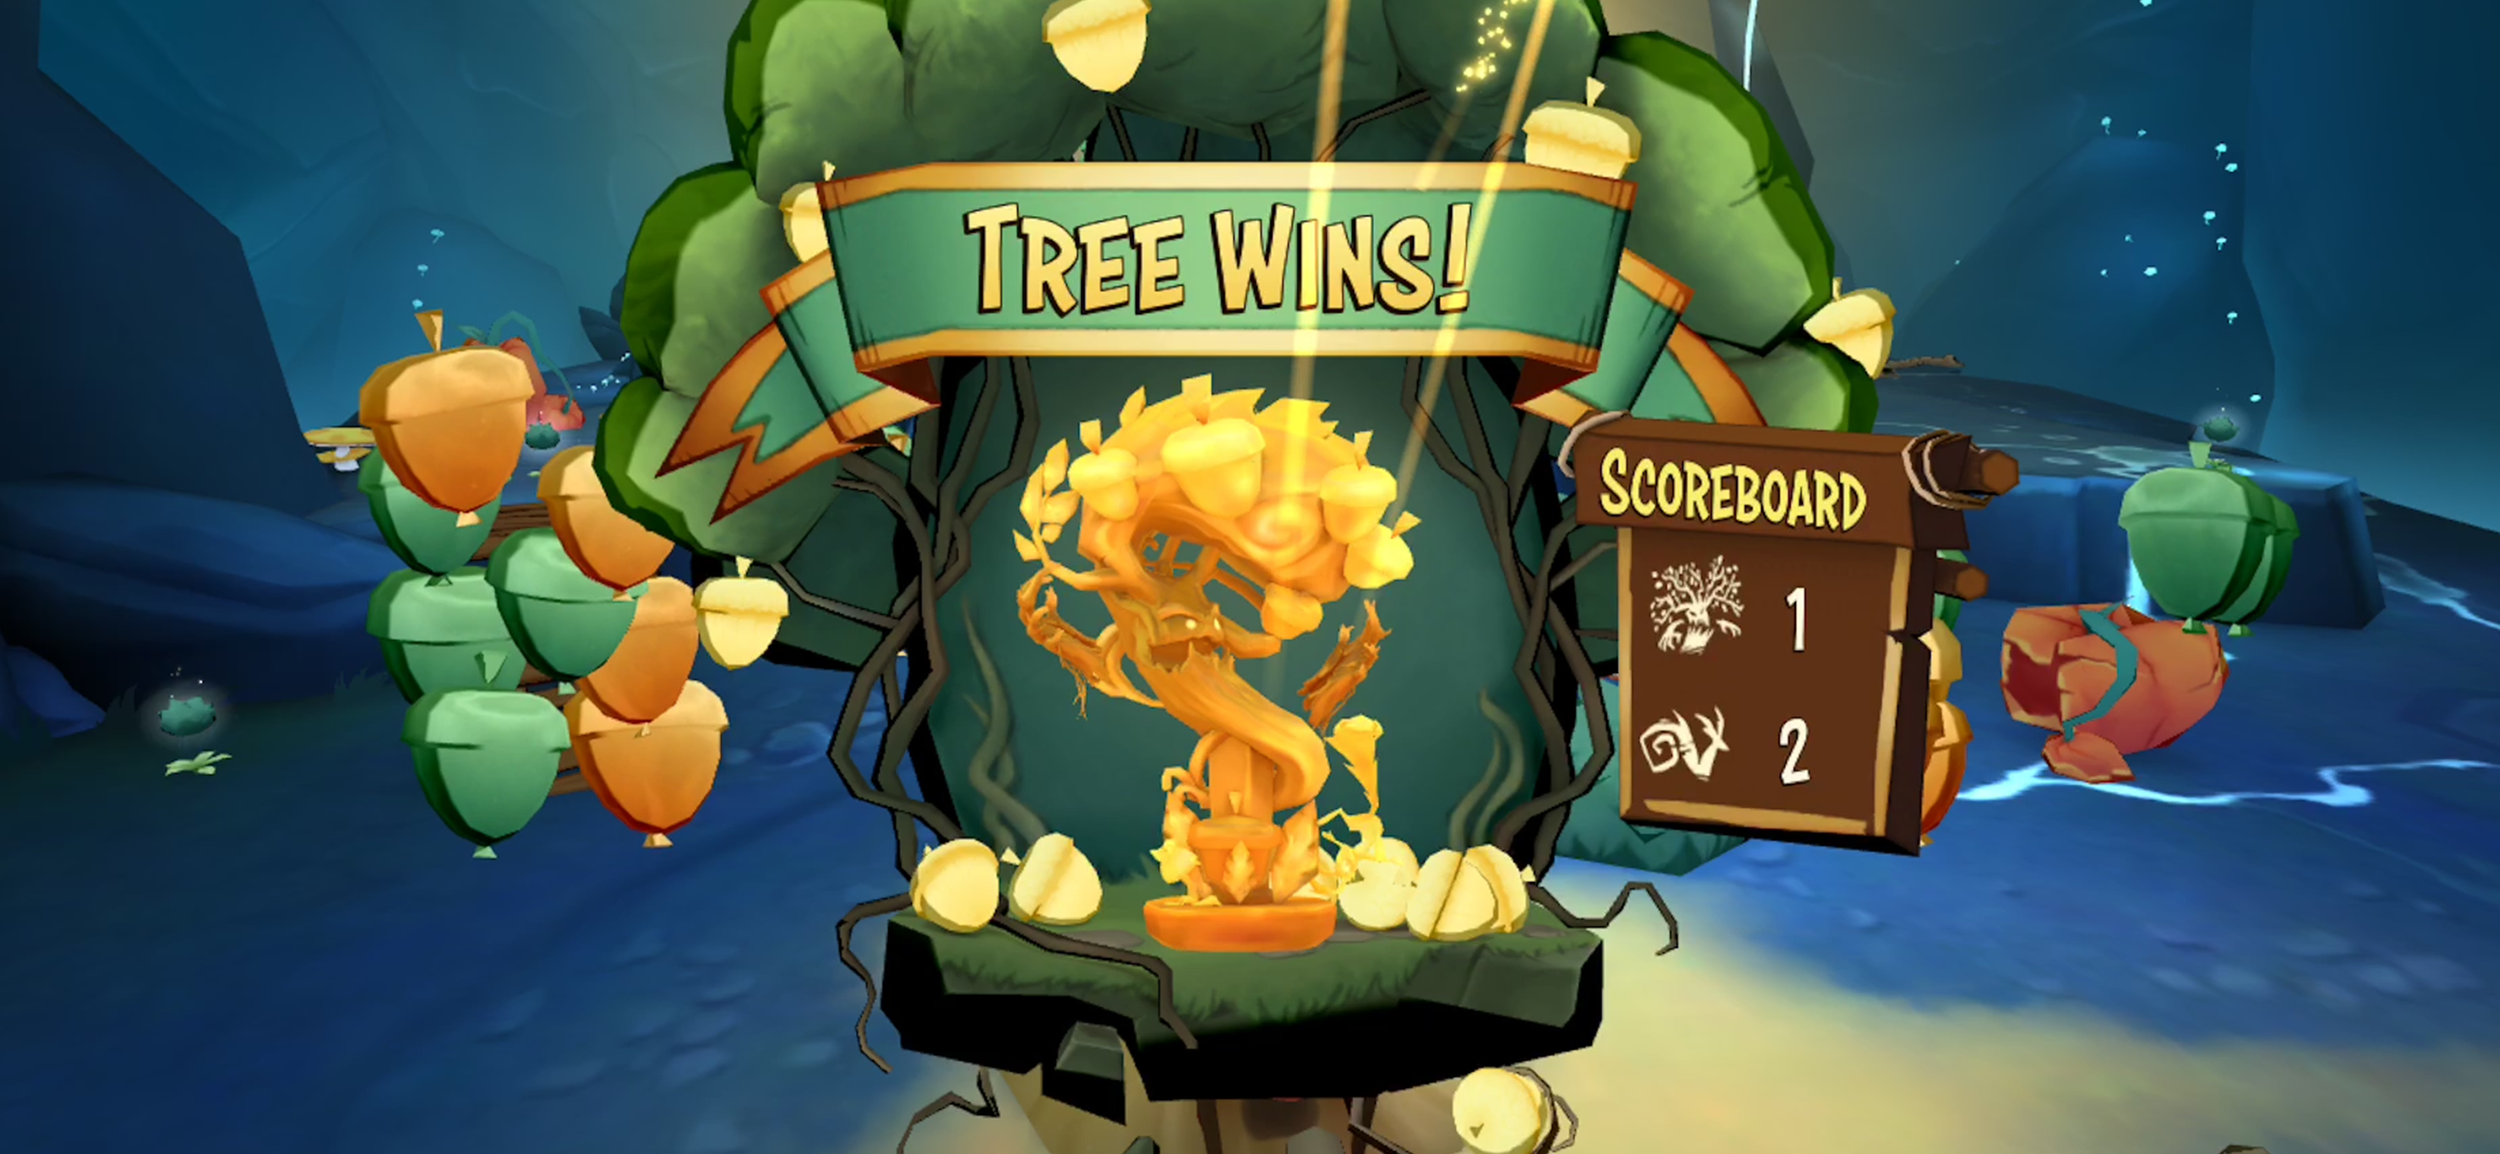 Tree Wins Image.png